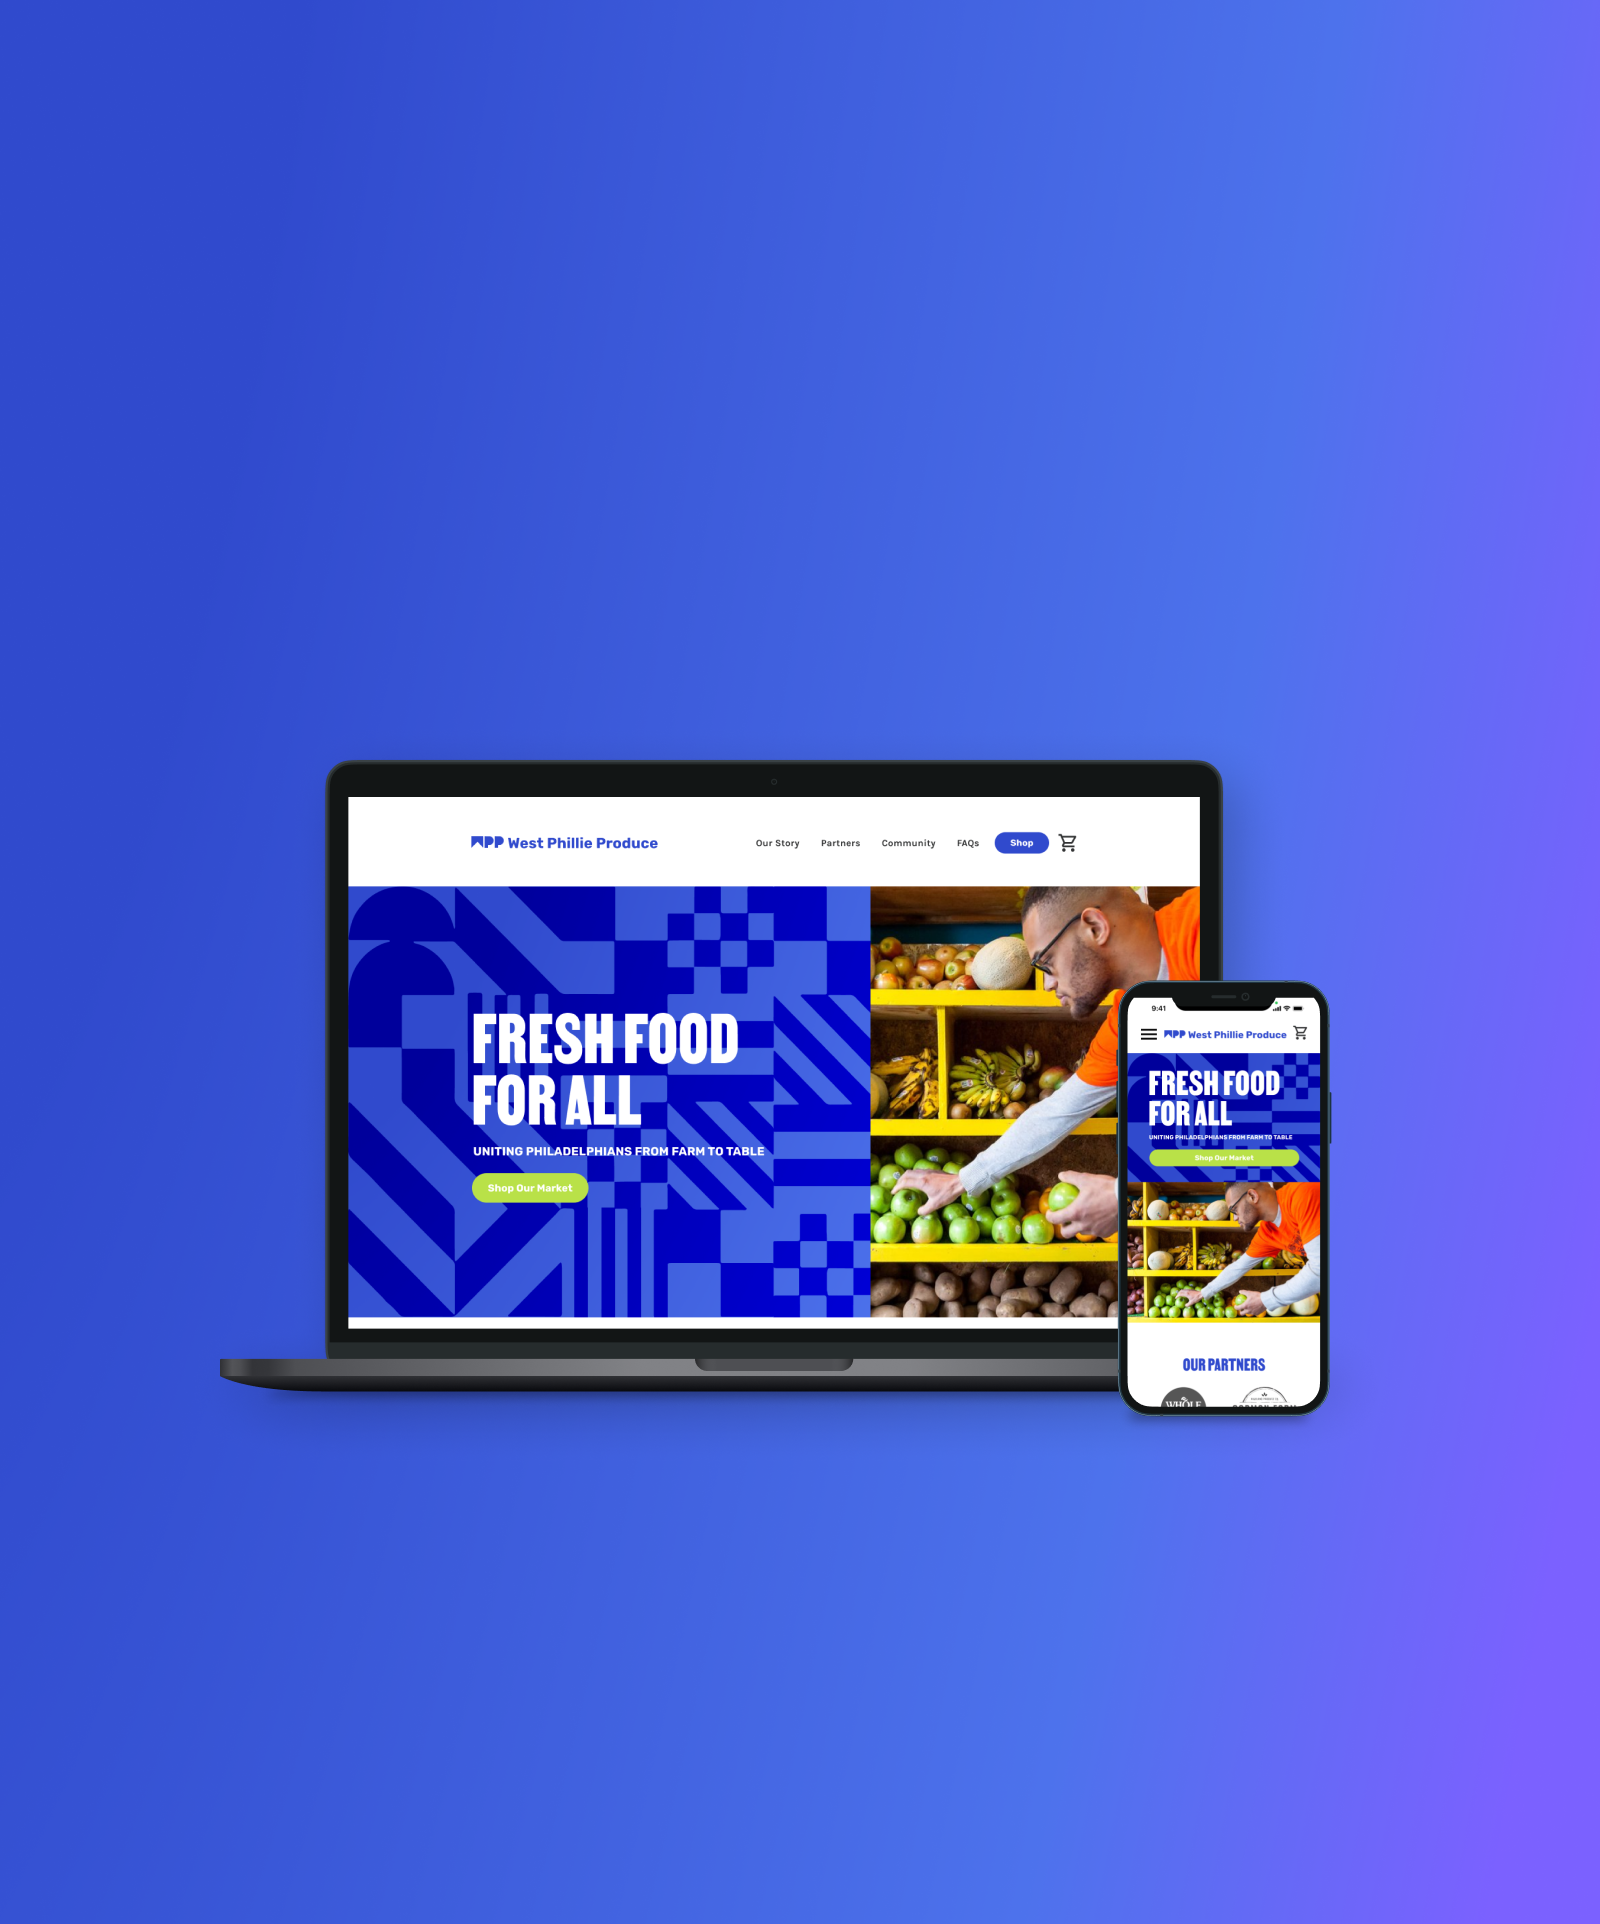 Purple blue background with macbook laptop and iphone website mockup